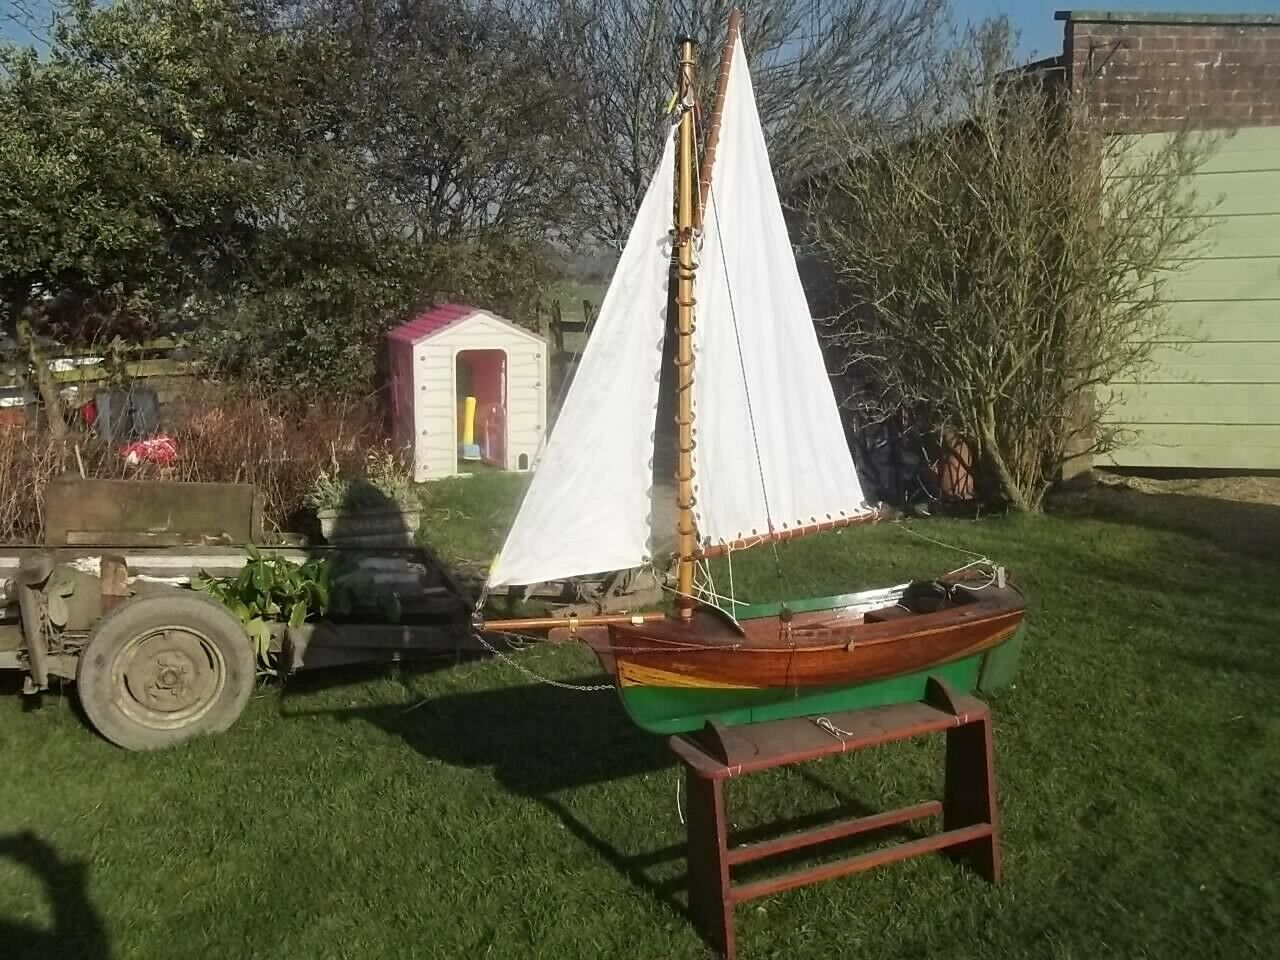 VINTAGE LARGE WOODEN SAIL BOAT, DINGHY, YACHT,GAFF RIG,FREE SAILING, WITH STAND